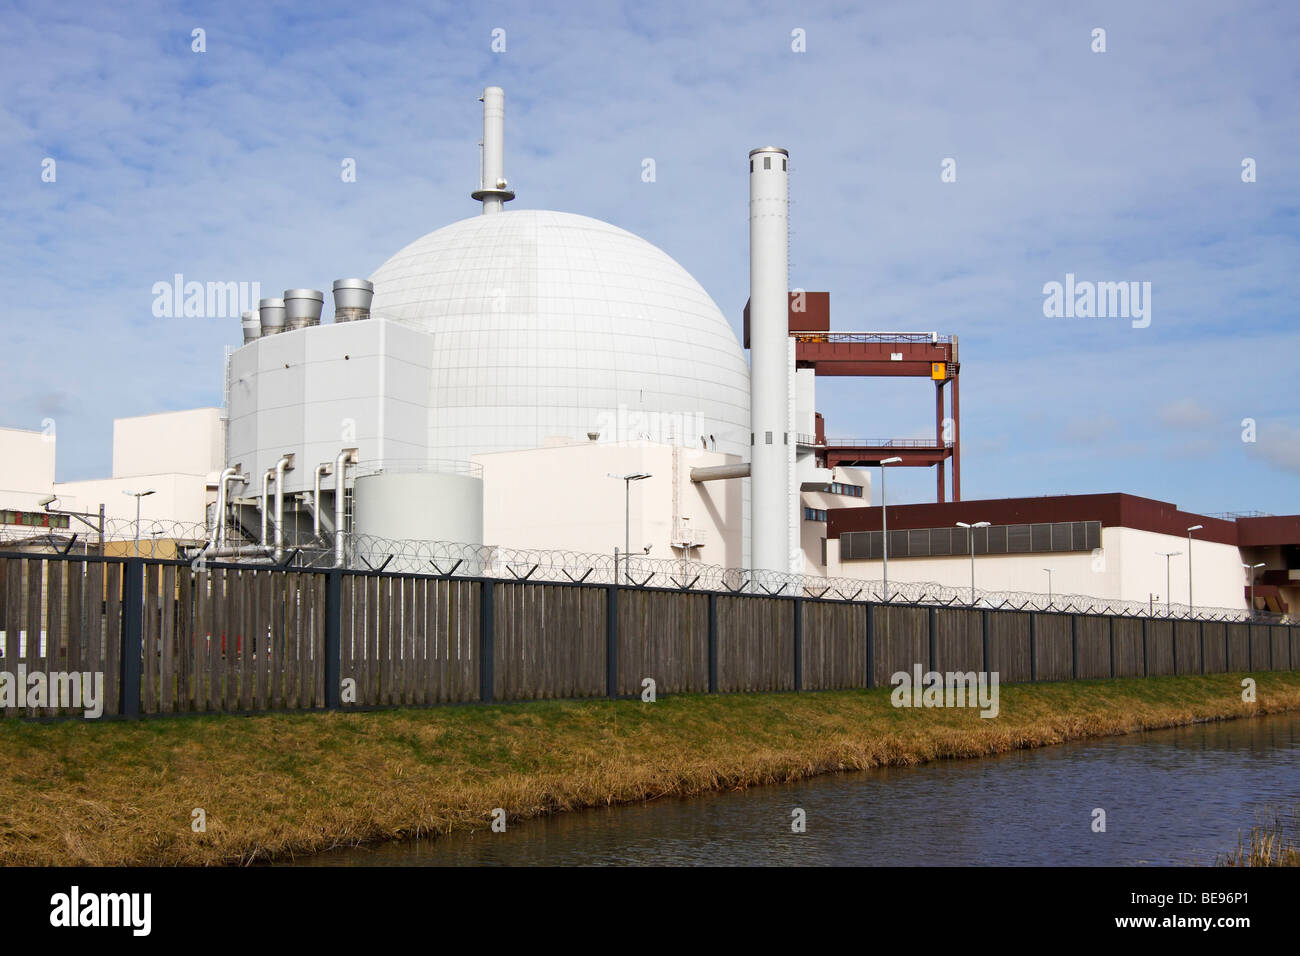 Nuclear power station / Brokdorf - Stock Image